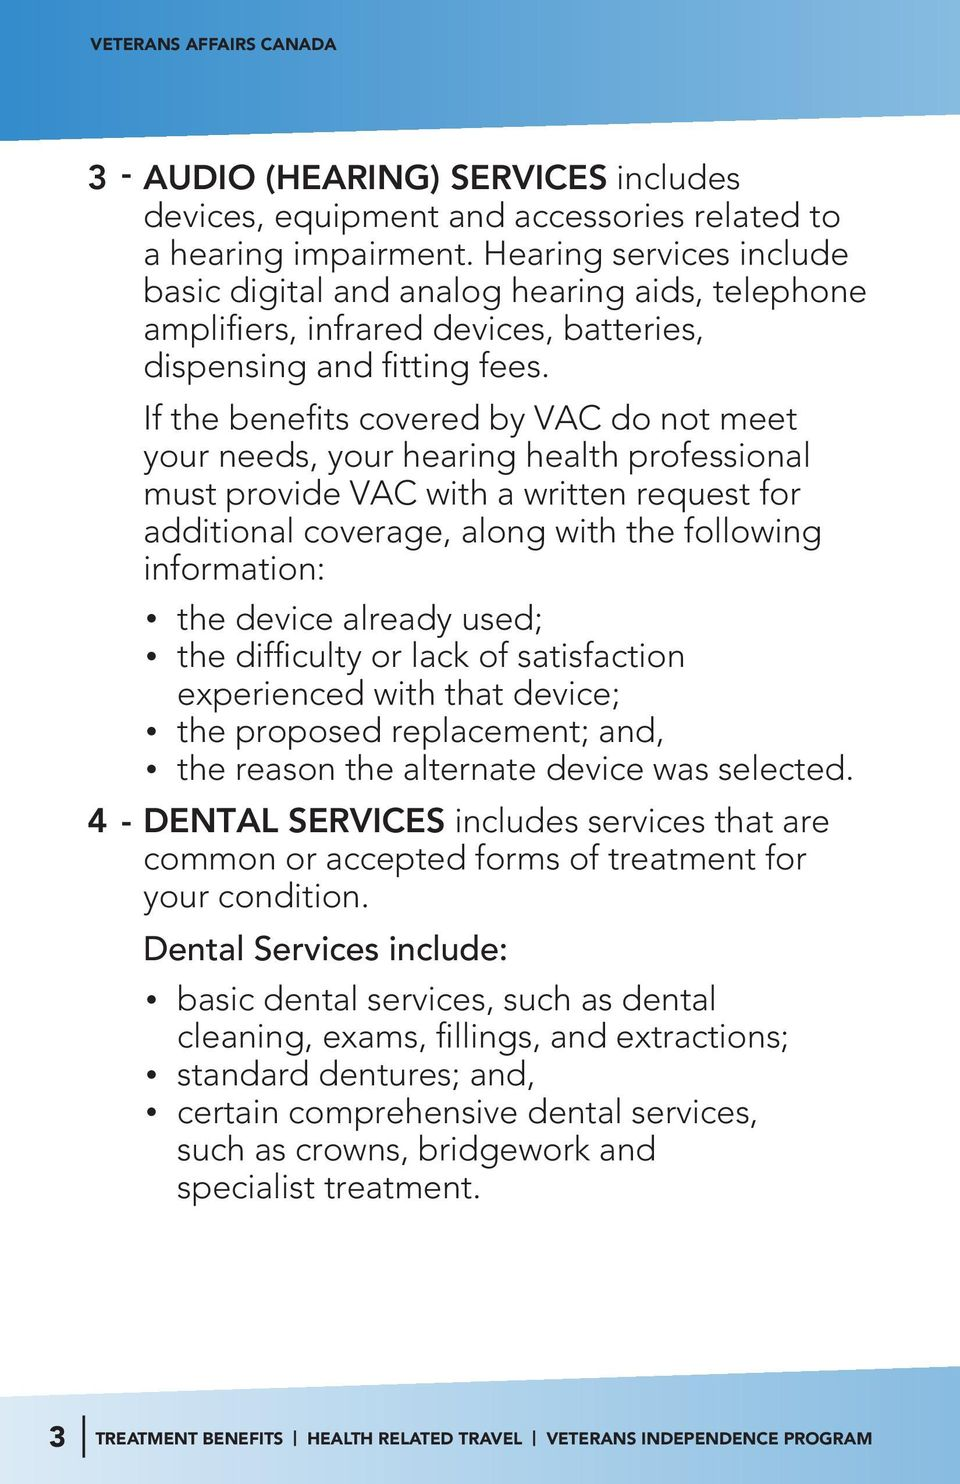 If the benefits covered by VAC do not meet your needs, your hearing health professional must provide VAC with a written request for additional coverage, along with the following information: the